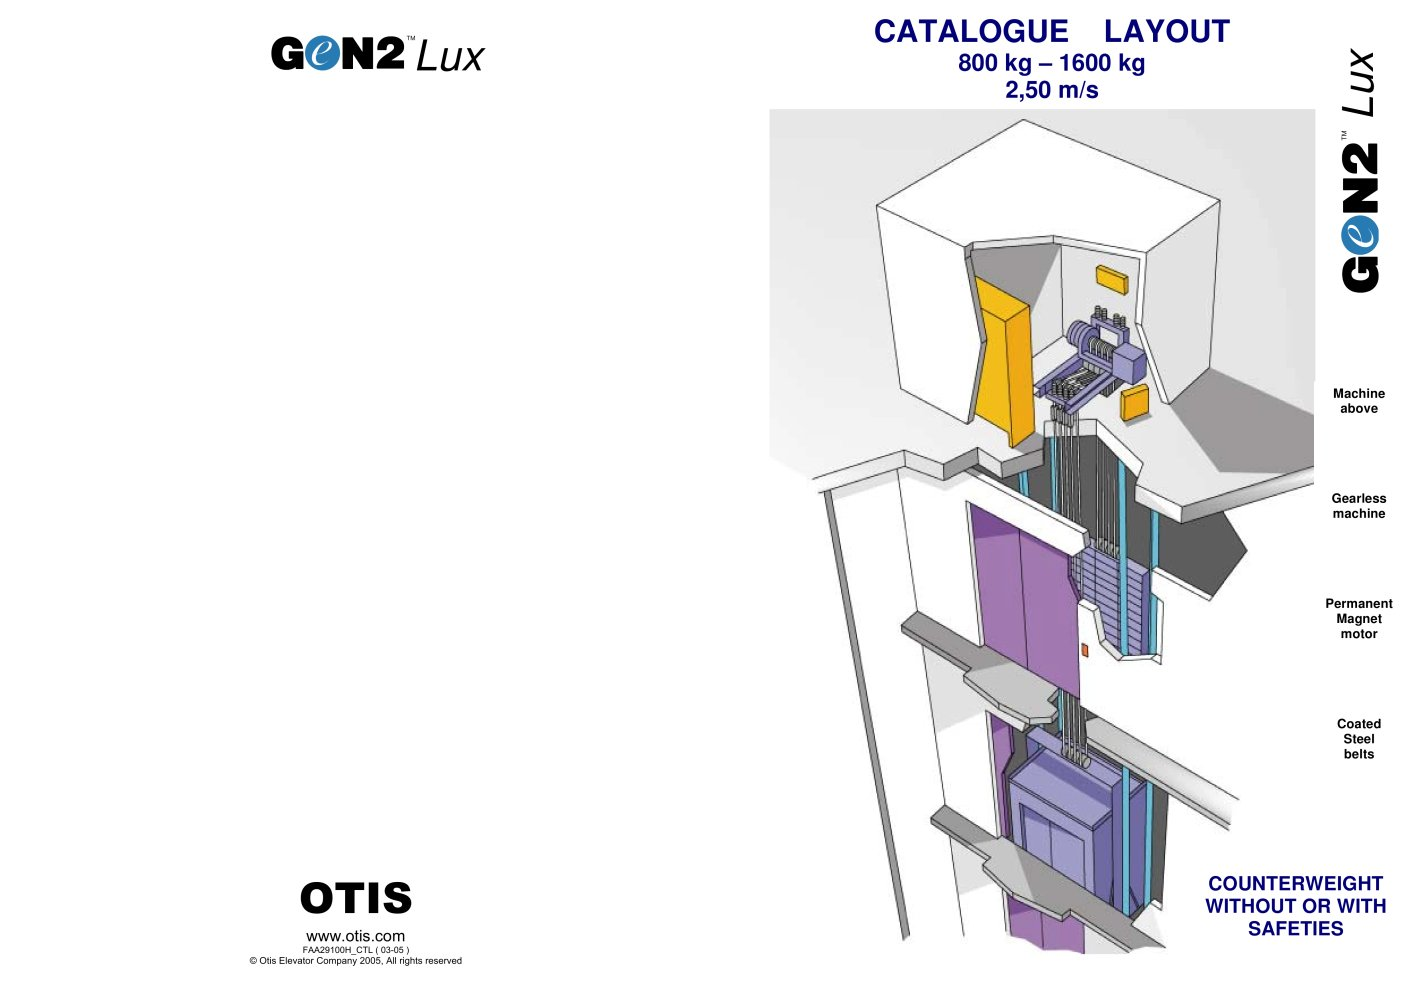 catalogues layout